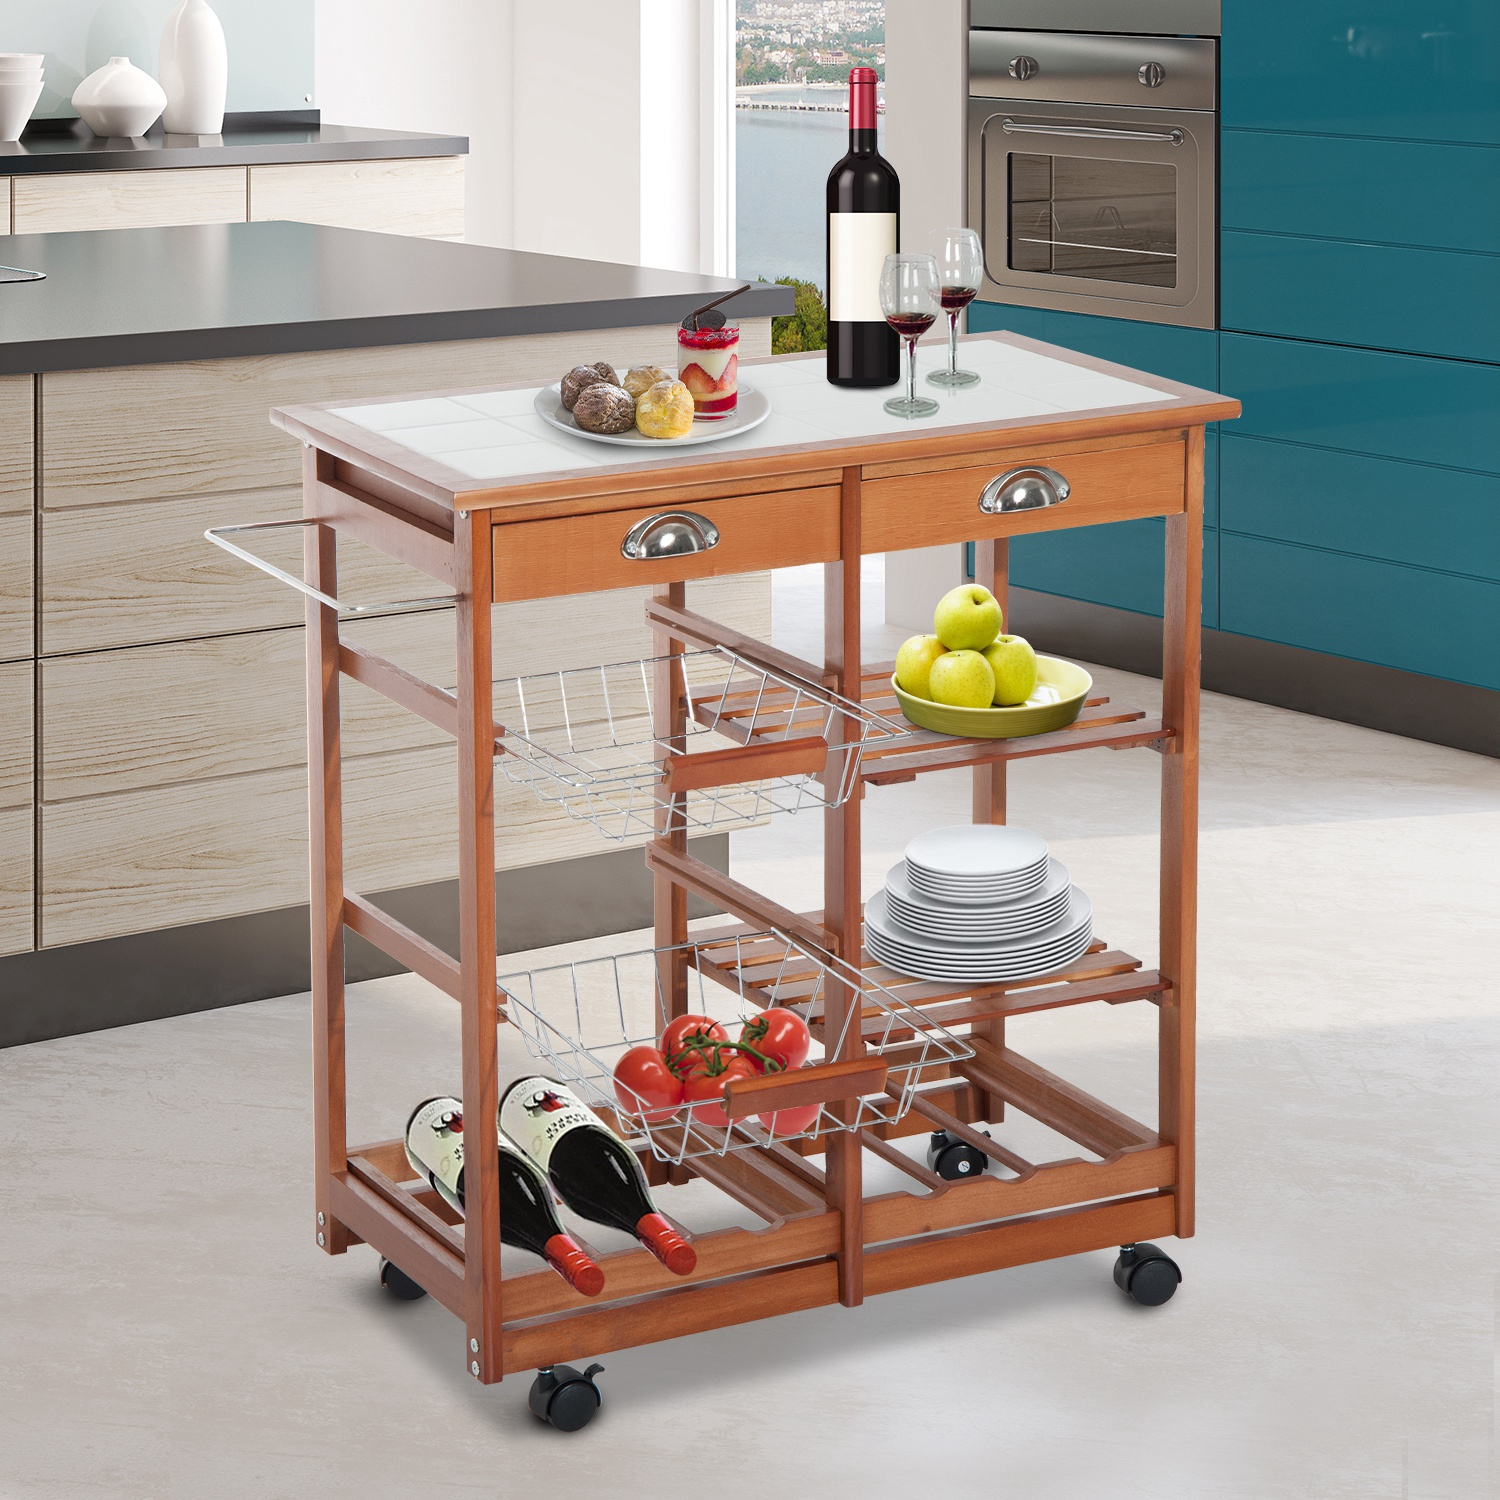 Homcom Rolling Kitchen Trolley Cart 4 Tier Storage Wooden Table Rack 2 Drawers Baskets Countertop